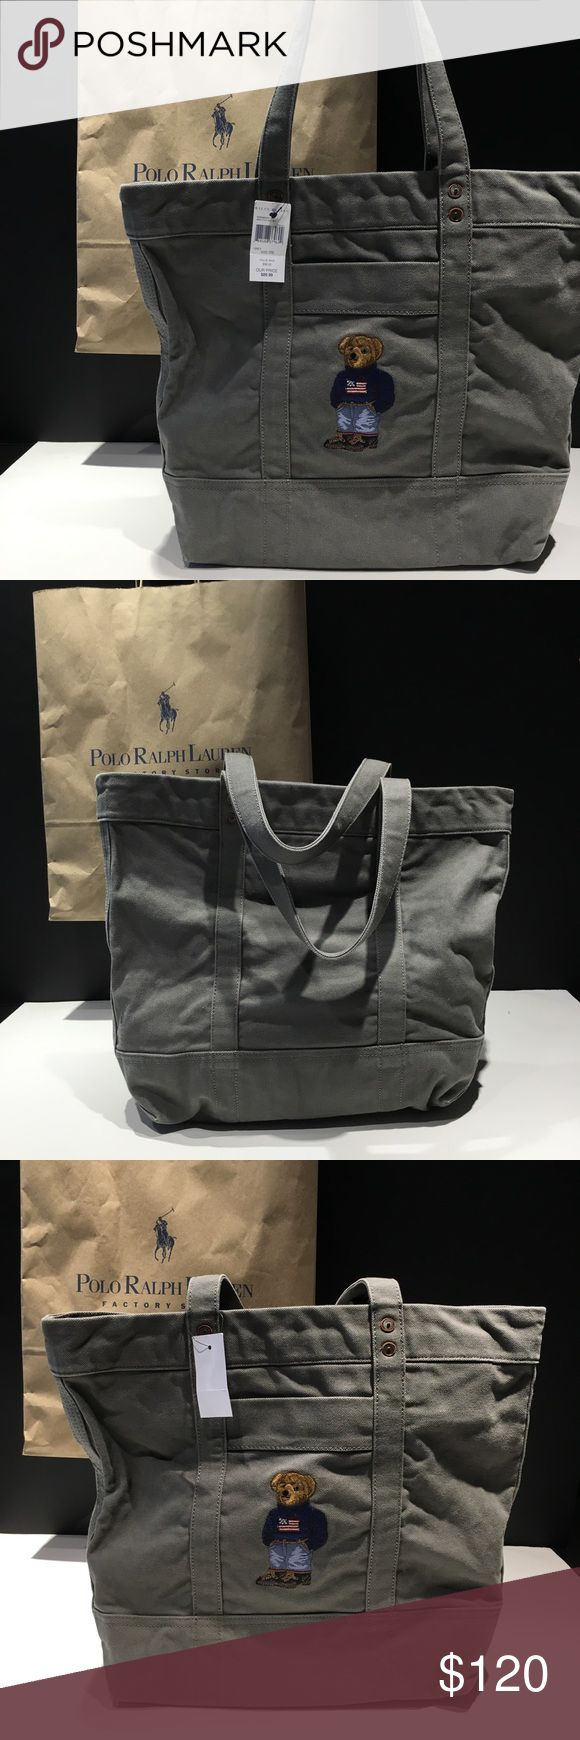 """Ralph Lauren Polo Bear Limited Edition Tote Bag 100% authentic polo bear merchandise   SOLD OUT EVERYWHERE  Polo Bear Tote Bag  Polo bear embroidered on the front  Slip pocket in front  Top zip closure Interior pocket  Two straps with 9"""" strap drop   SAME DAY SHIPPING Polo by Ralph Lauren Bags Totes"""